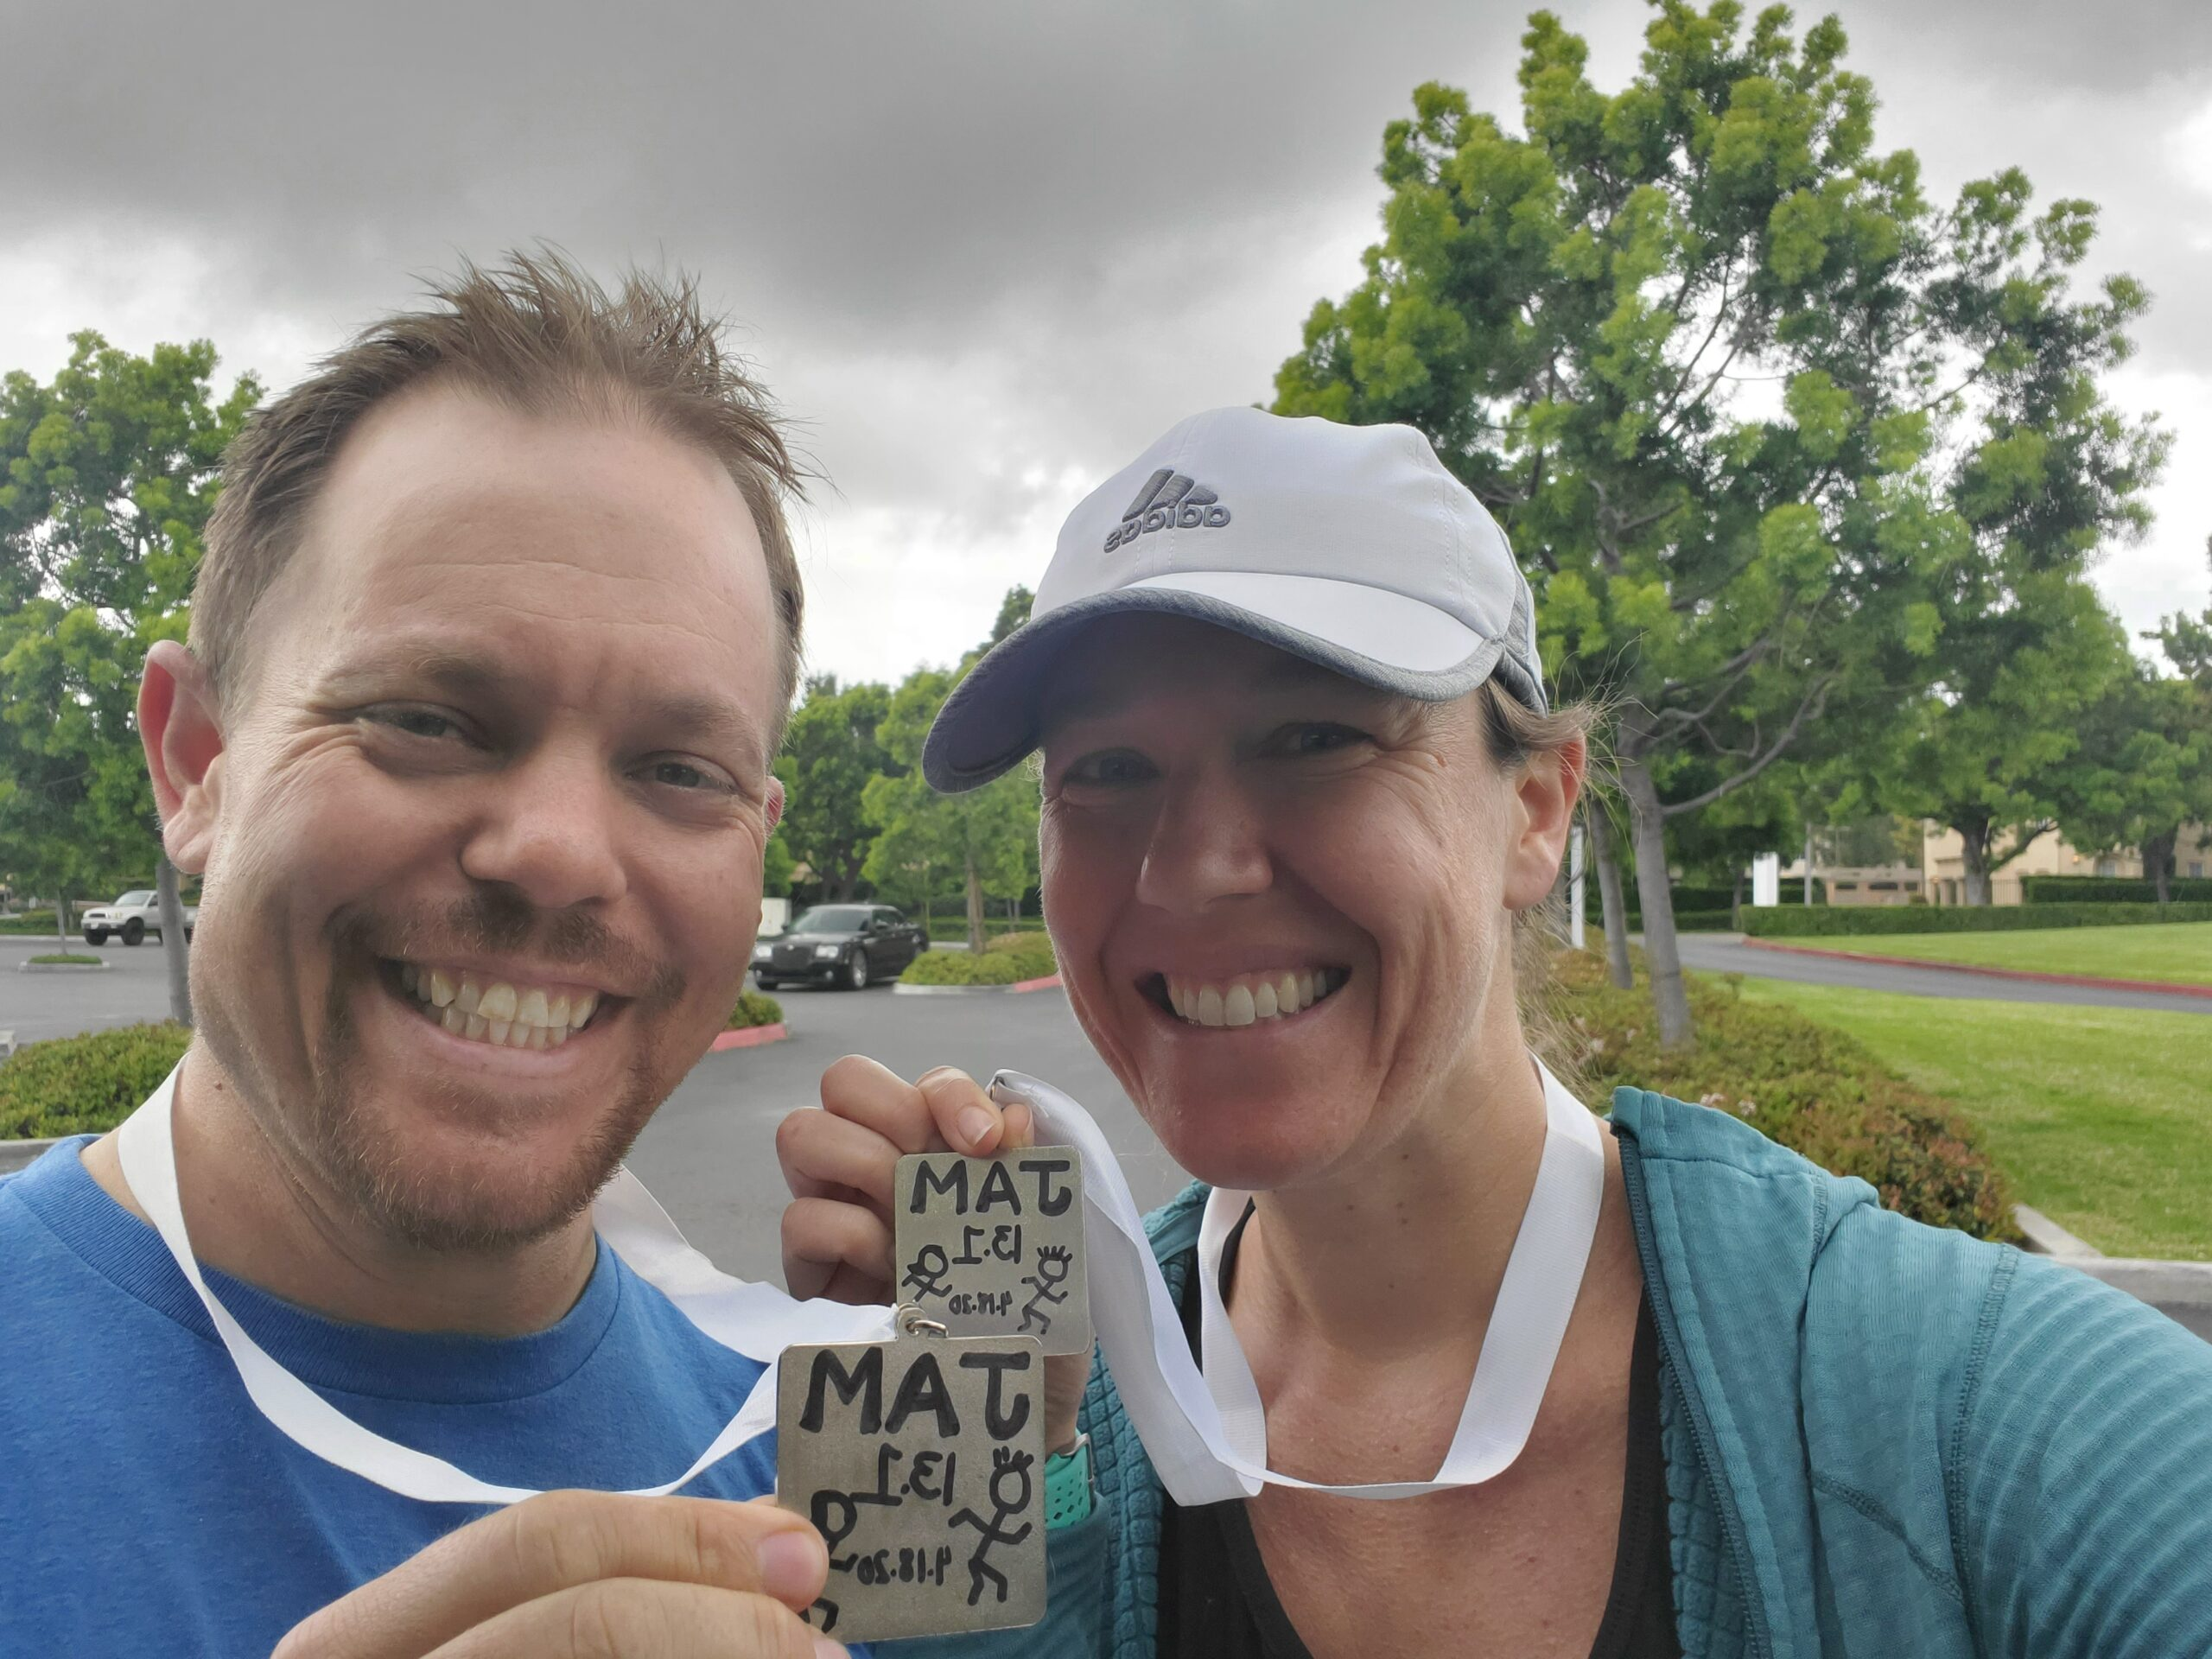 Justin and Margot with their homemade finishers medals